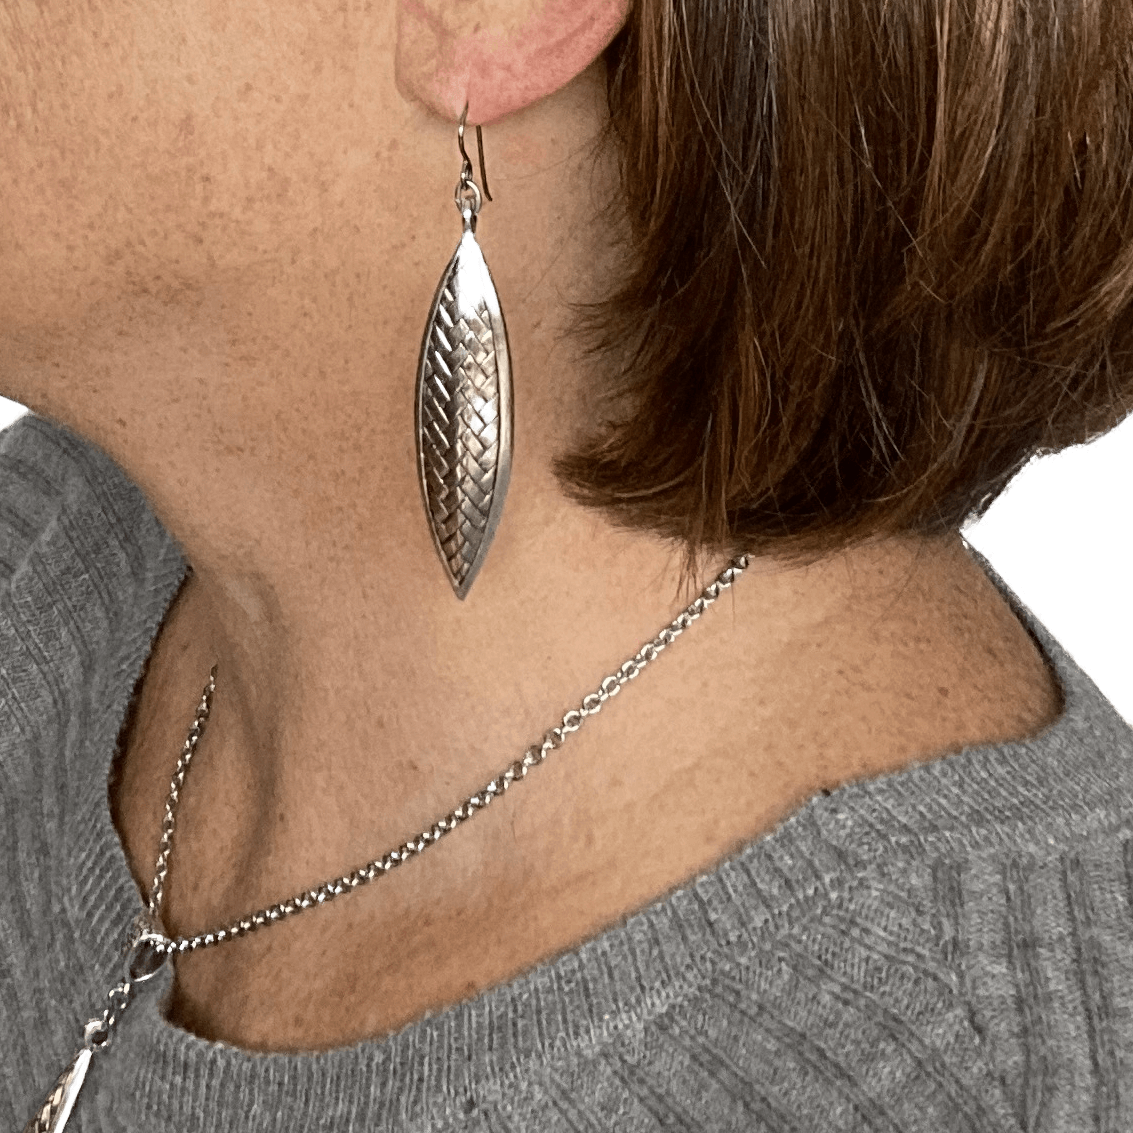 Pewter Silver Long Earrings for Sensitive Ears - Creative Jewelry by Marcia - Asymmetrical Jewelry - Timeless Jewelry